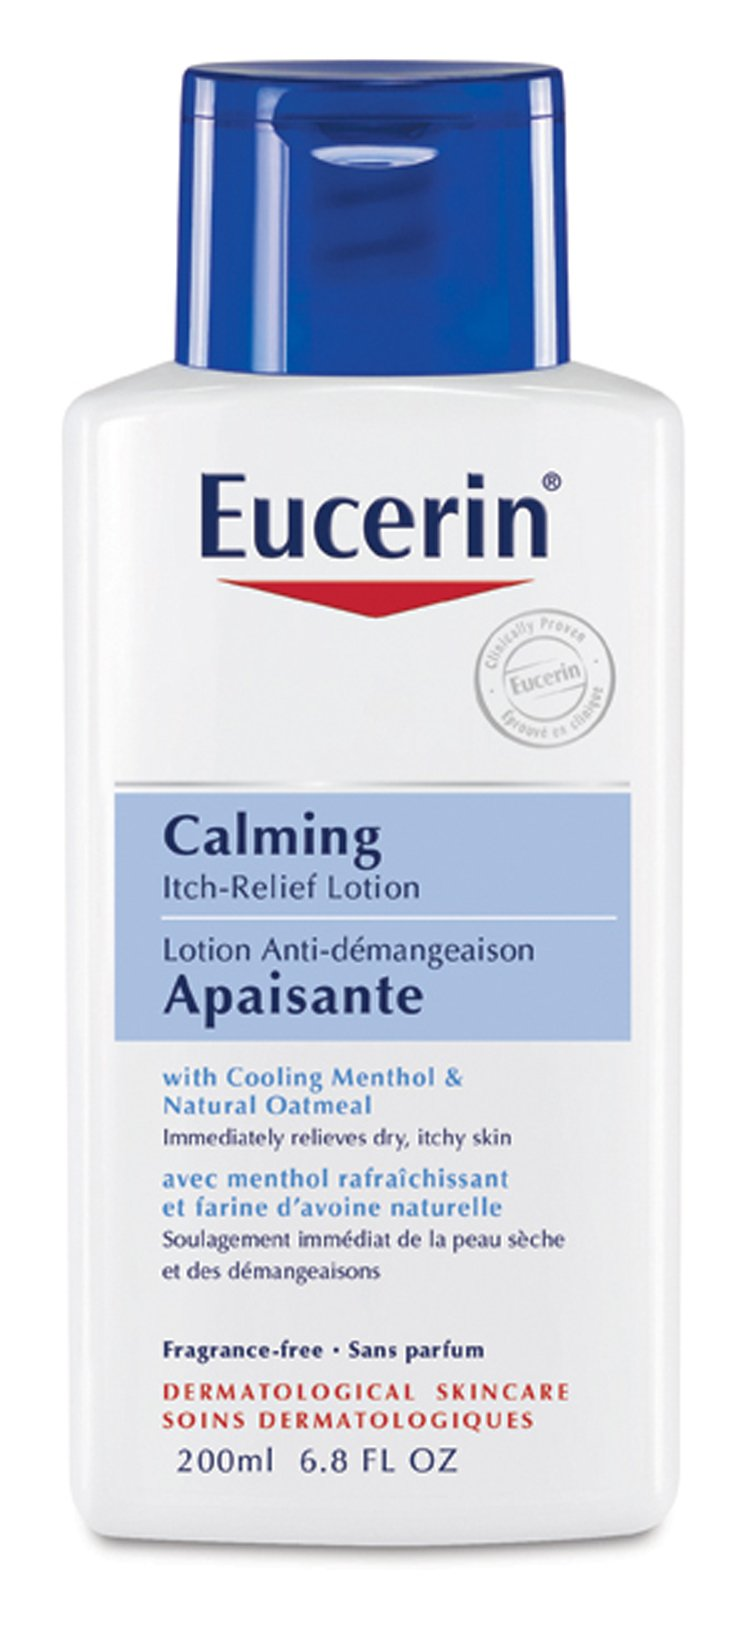 Eucerin Calming Itch Relief Treatment 6.8 oz Lotion